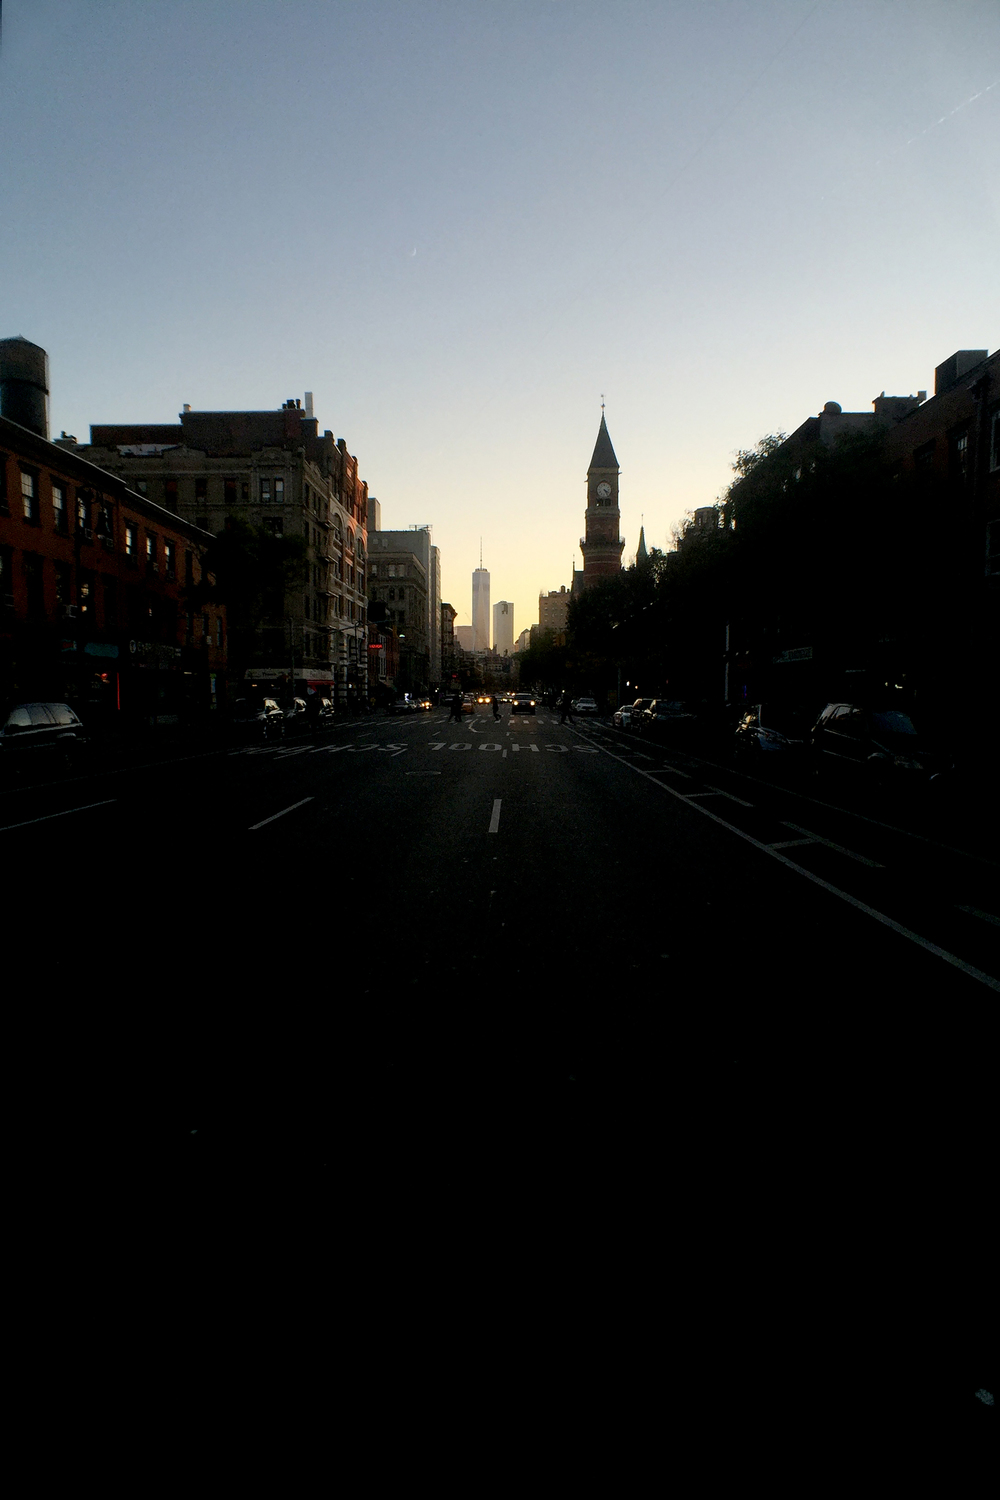 Looking south on Avenue of the Americas (6th Avenue) from W12th Street as a late autumn sunset approaches - November 15, 2015